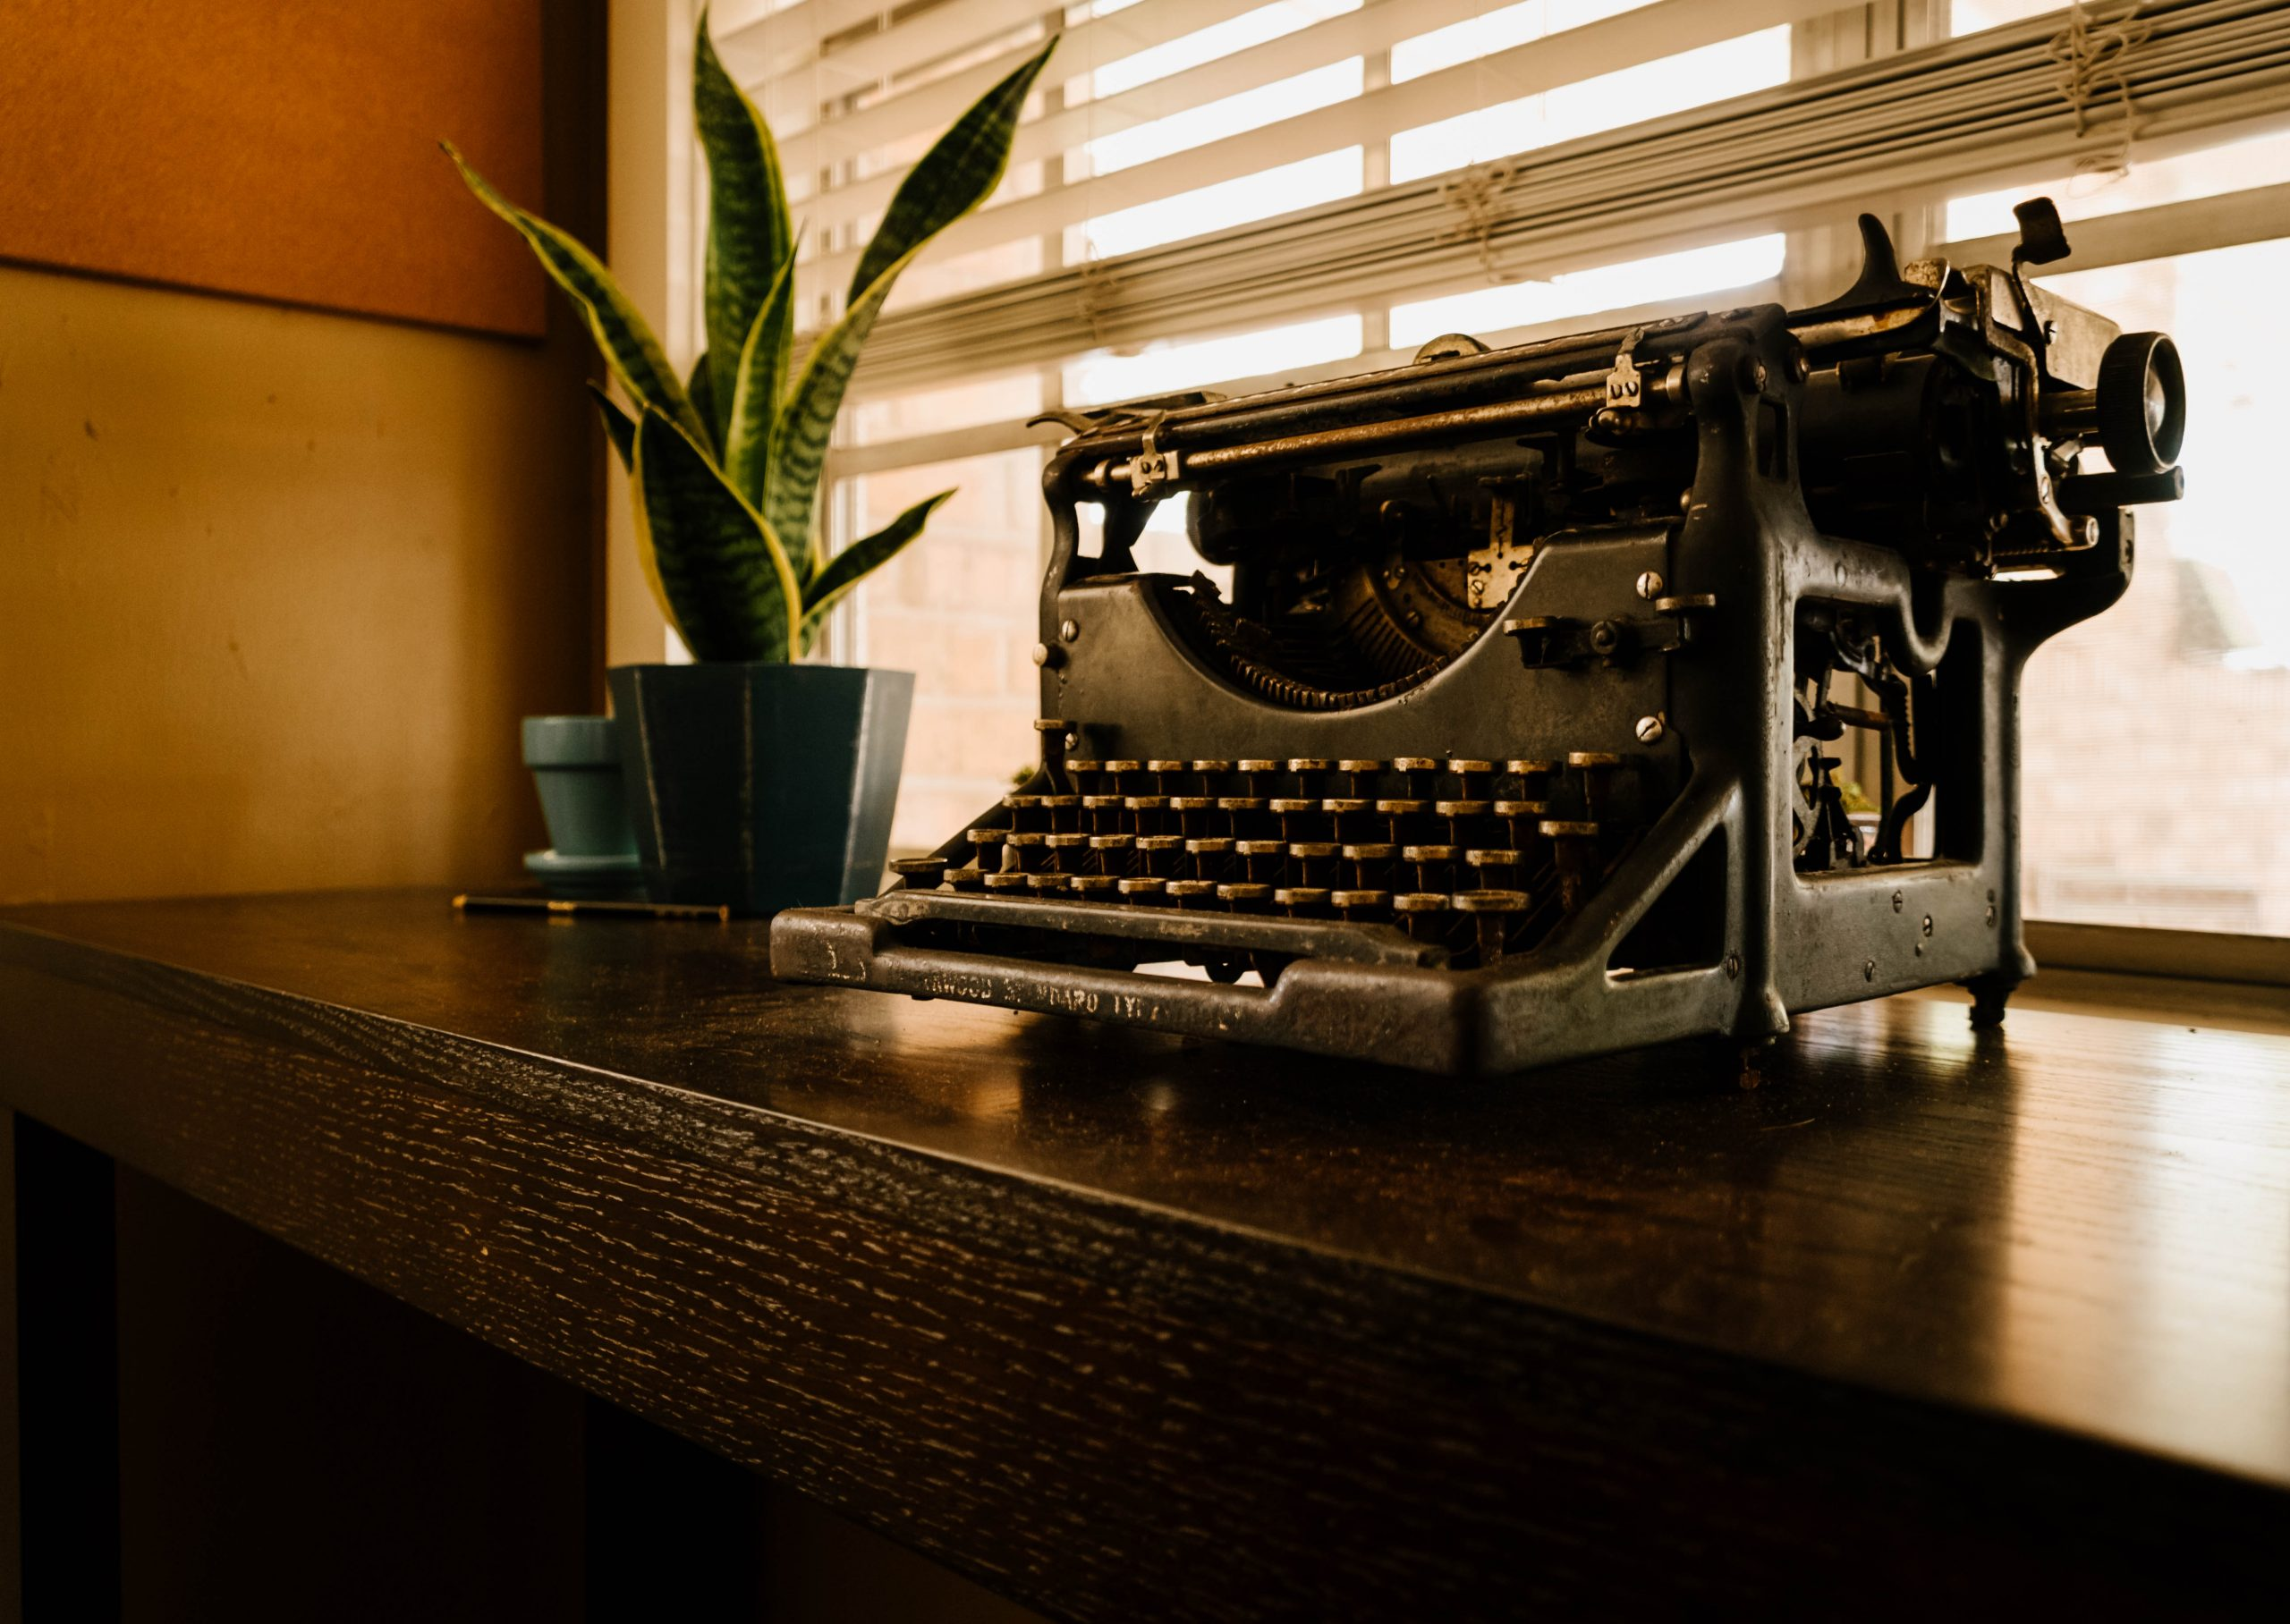 Vintage Typewrite {living outside the stacks}